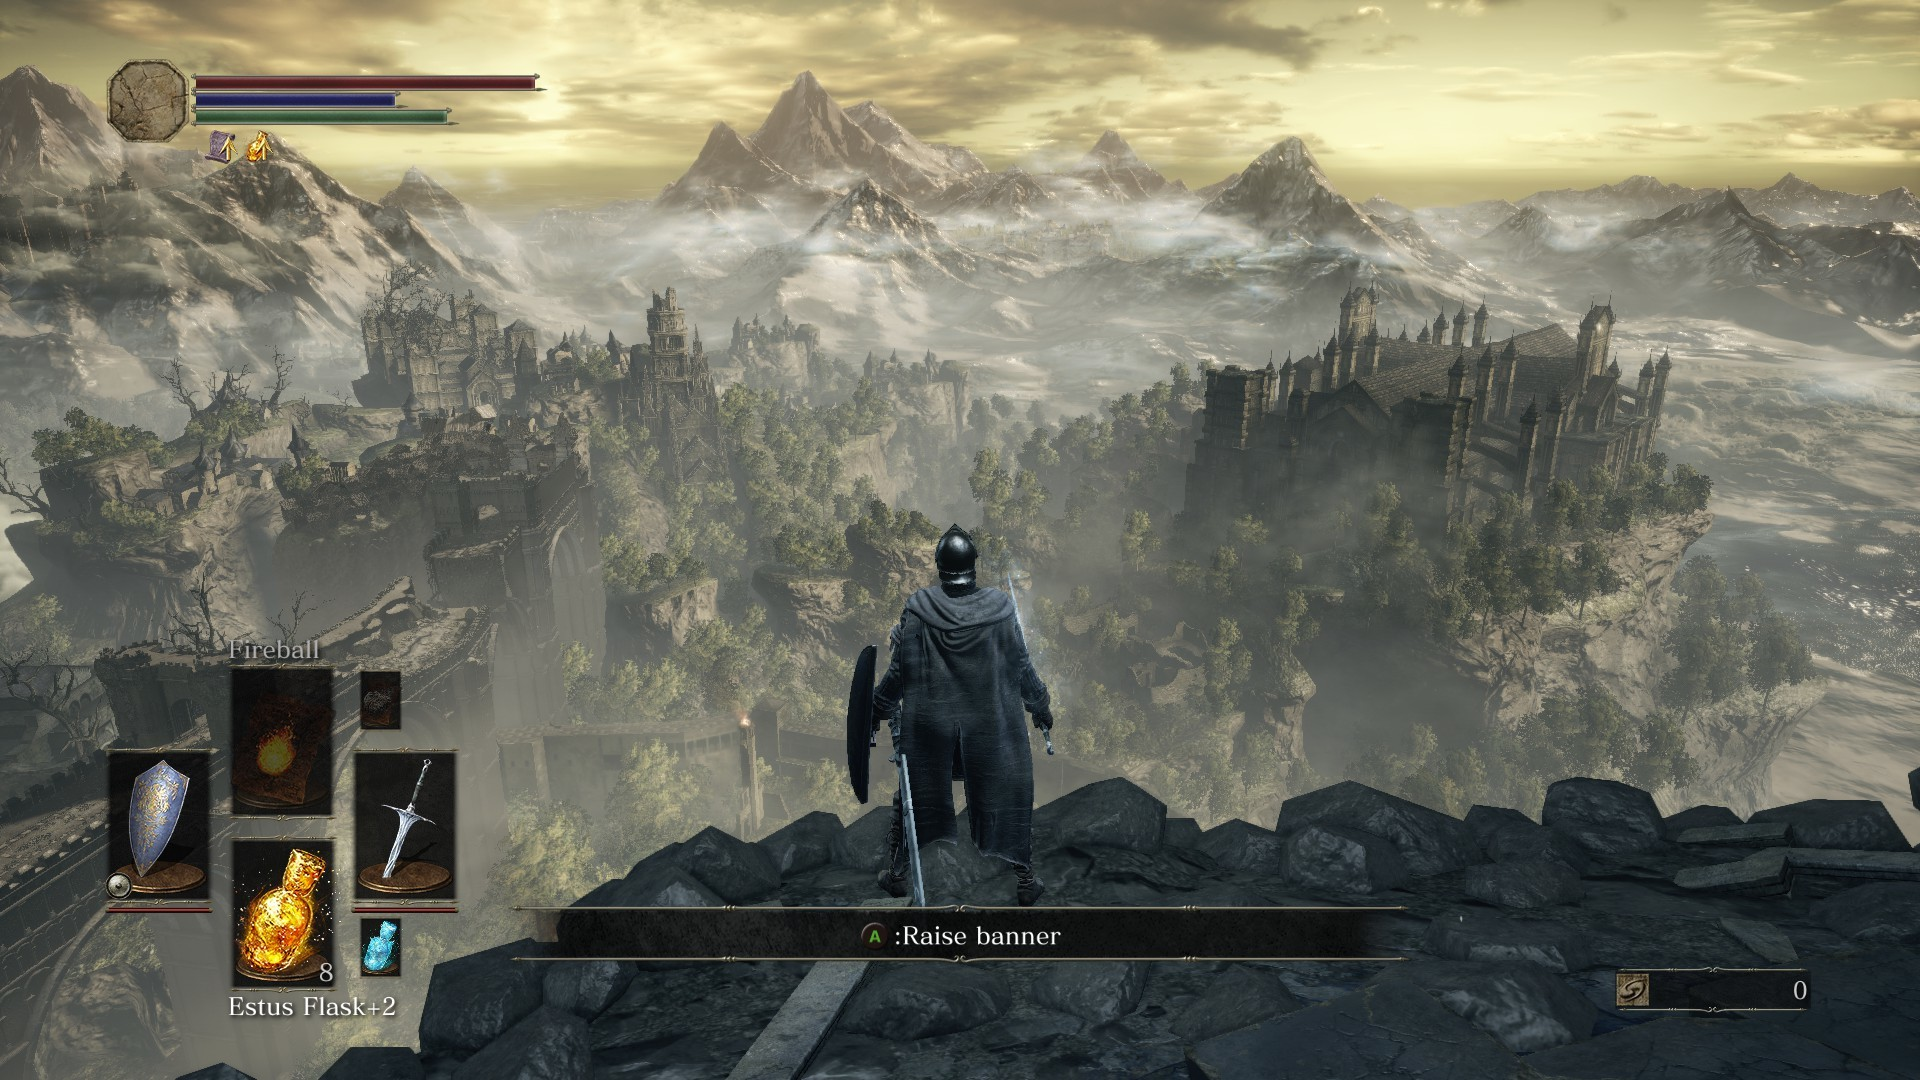 Dark Souls III does a terrific job with scale and providing beautiful vistas